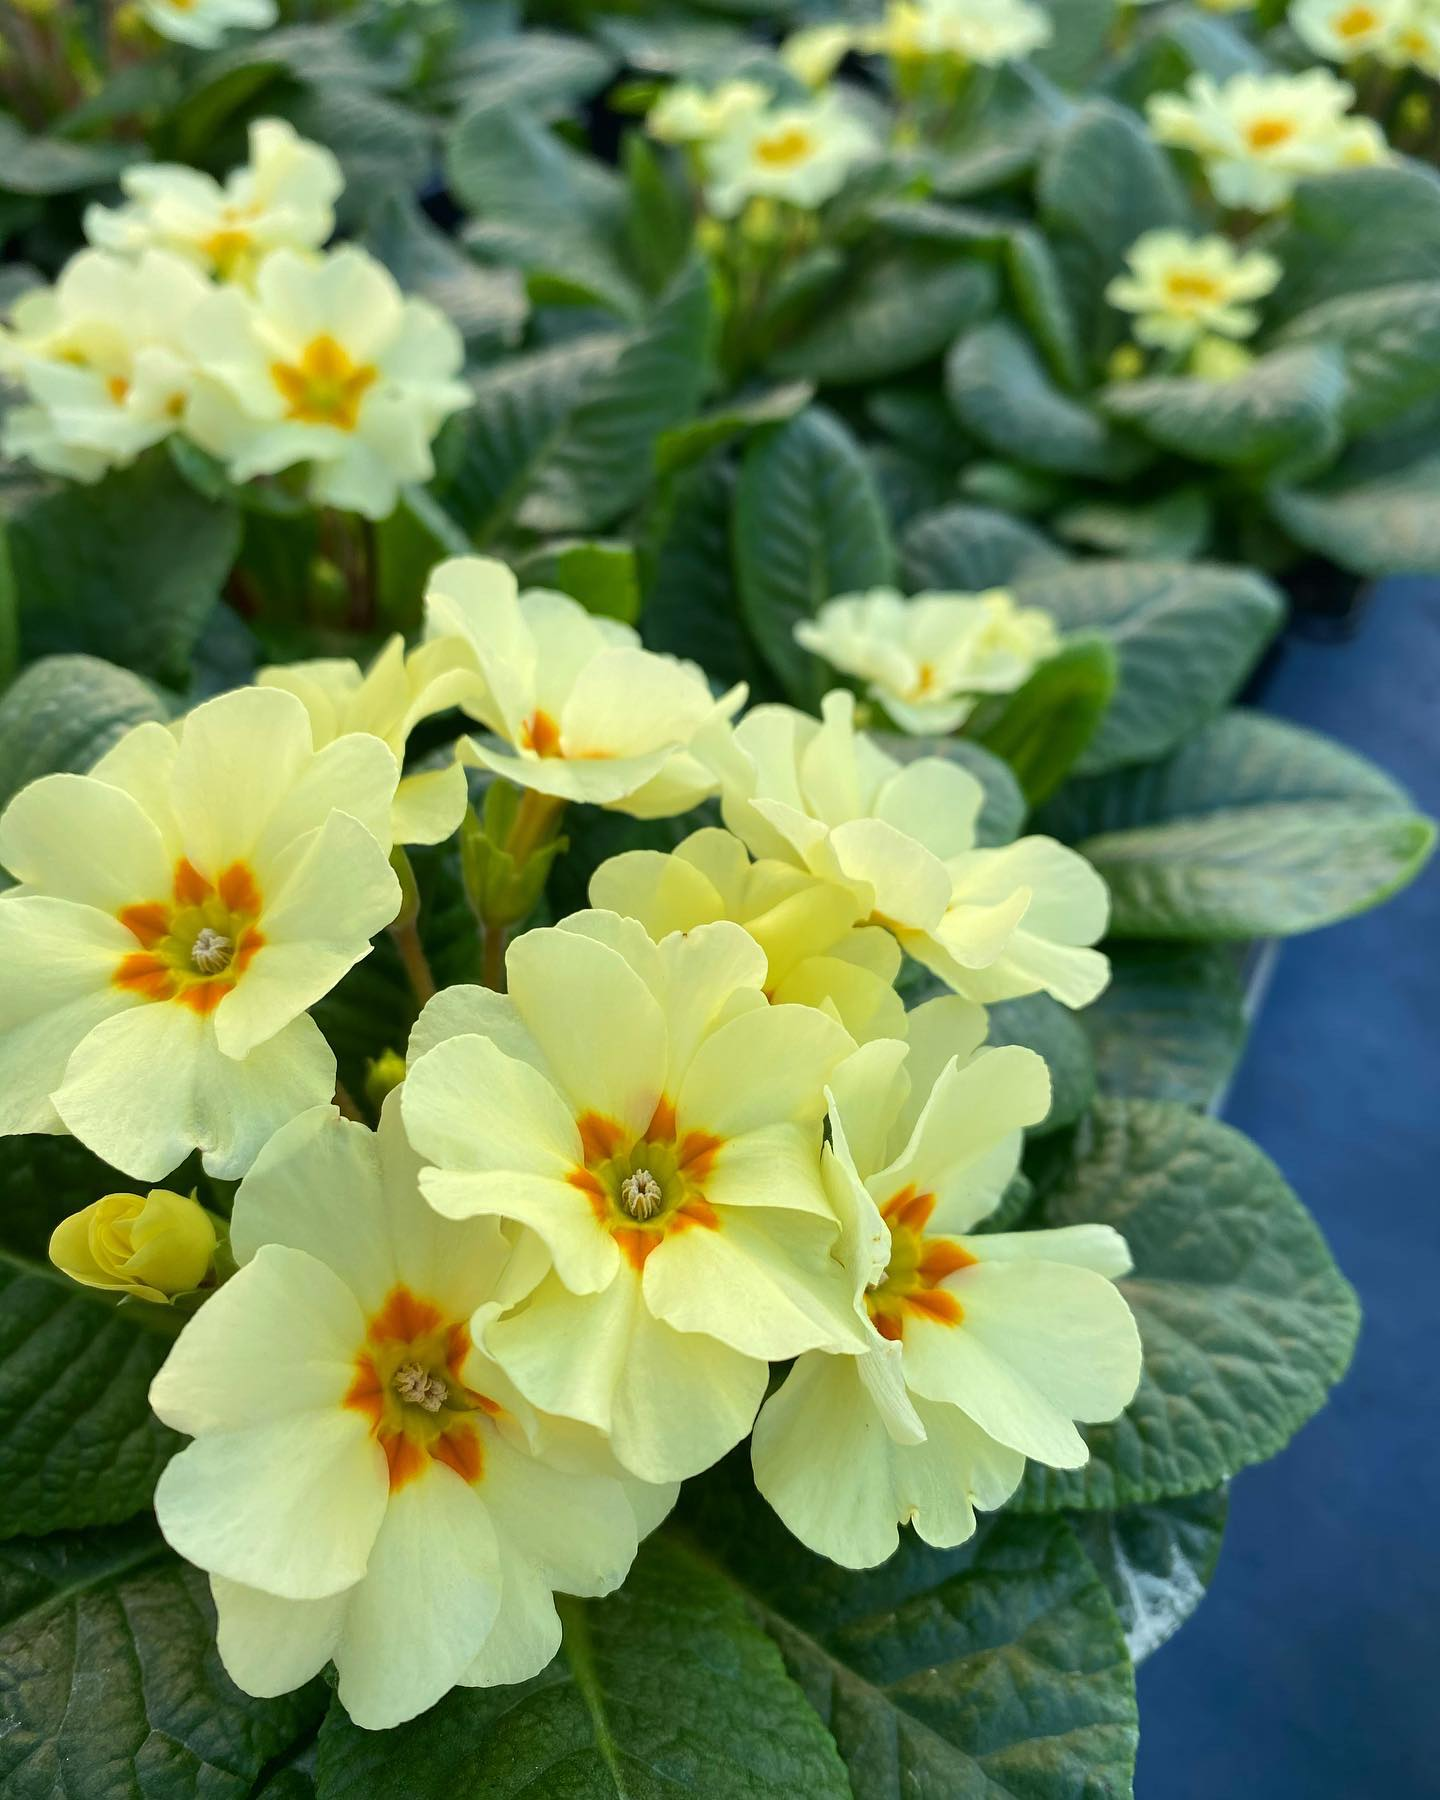 Yellow Primroses - Early Flowering